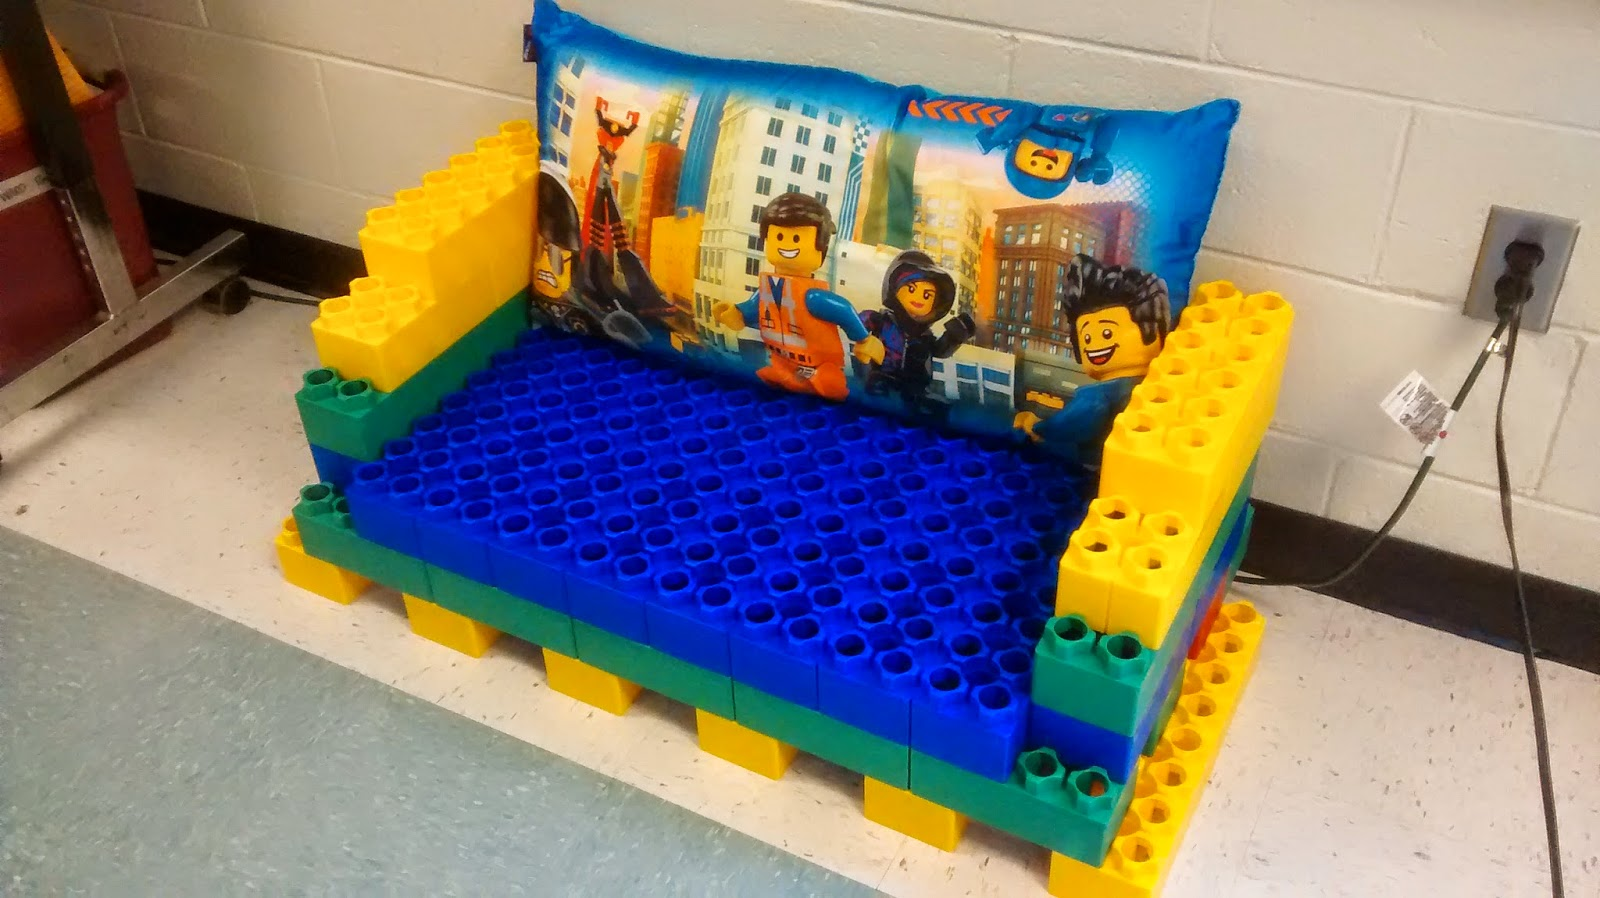 Groovy Class: Lego-themed Classroom: Everything is Awesome!